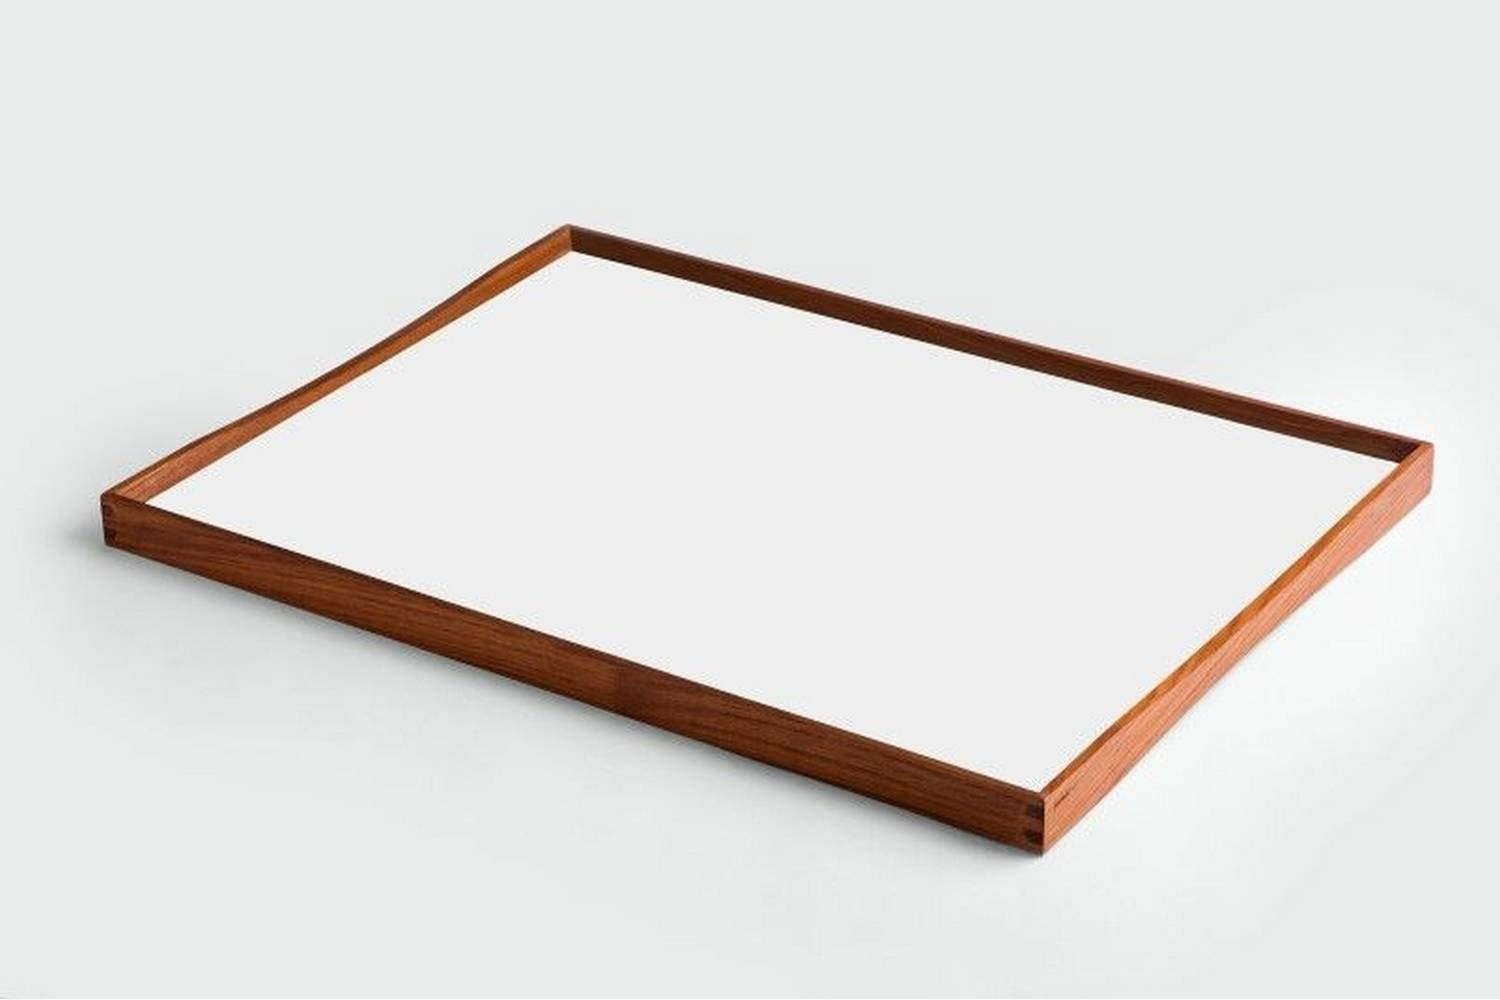 Turning Tray 3 by Finn Juhl for Architectmade